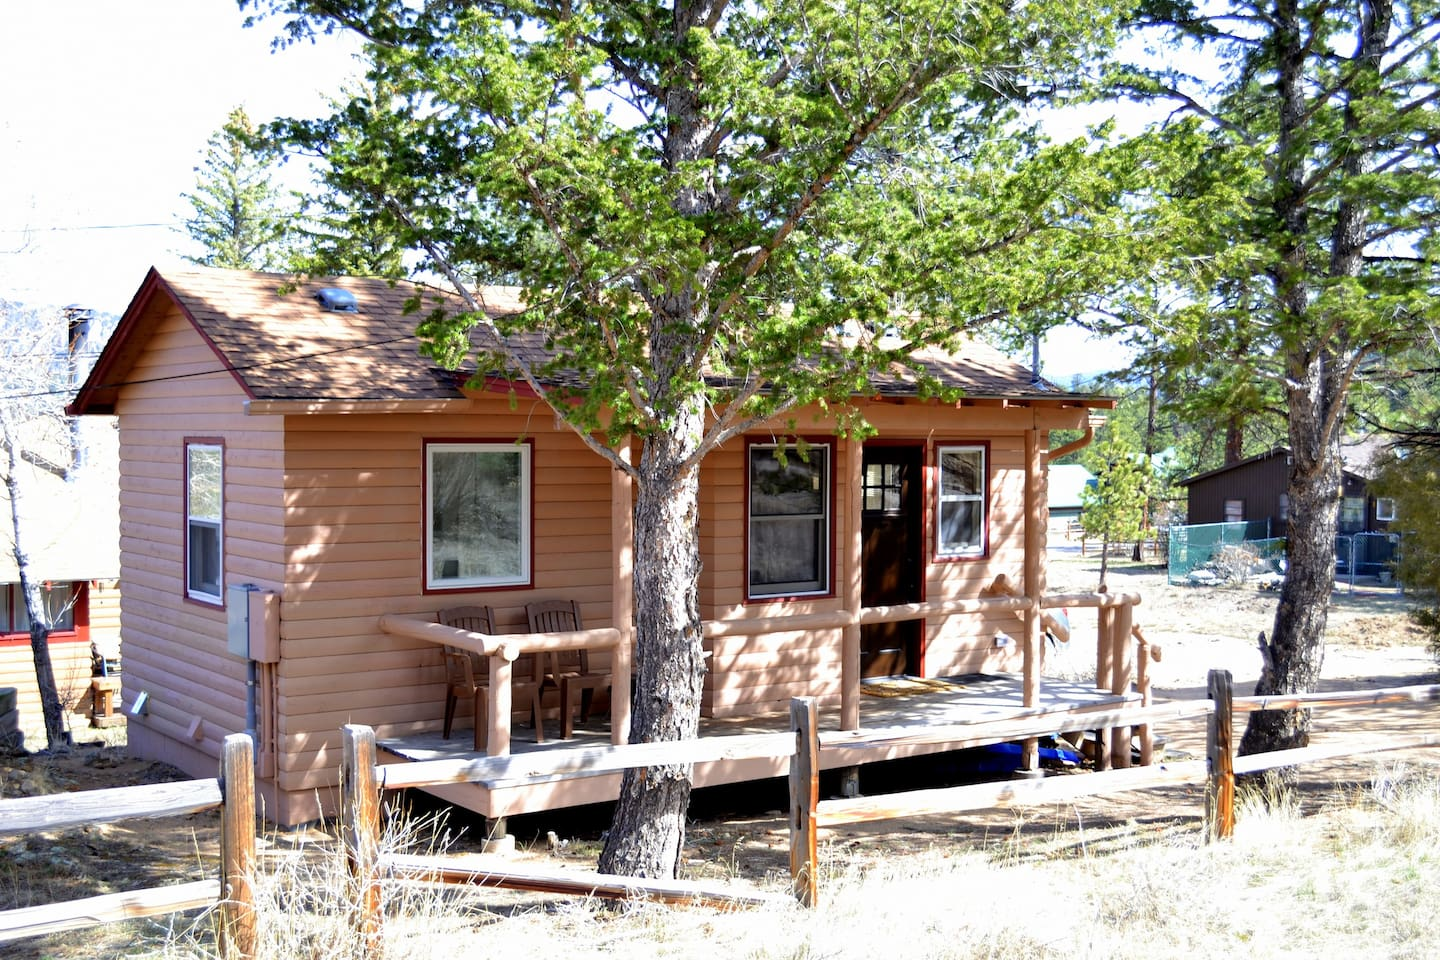 pet rent fire texas rooms states friendly fredericksburg acres united romantic in adfb cabins on for angel secluded cabin